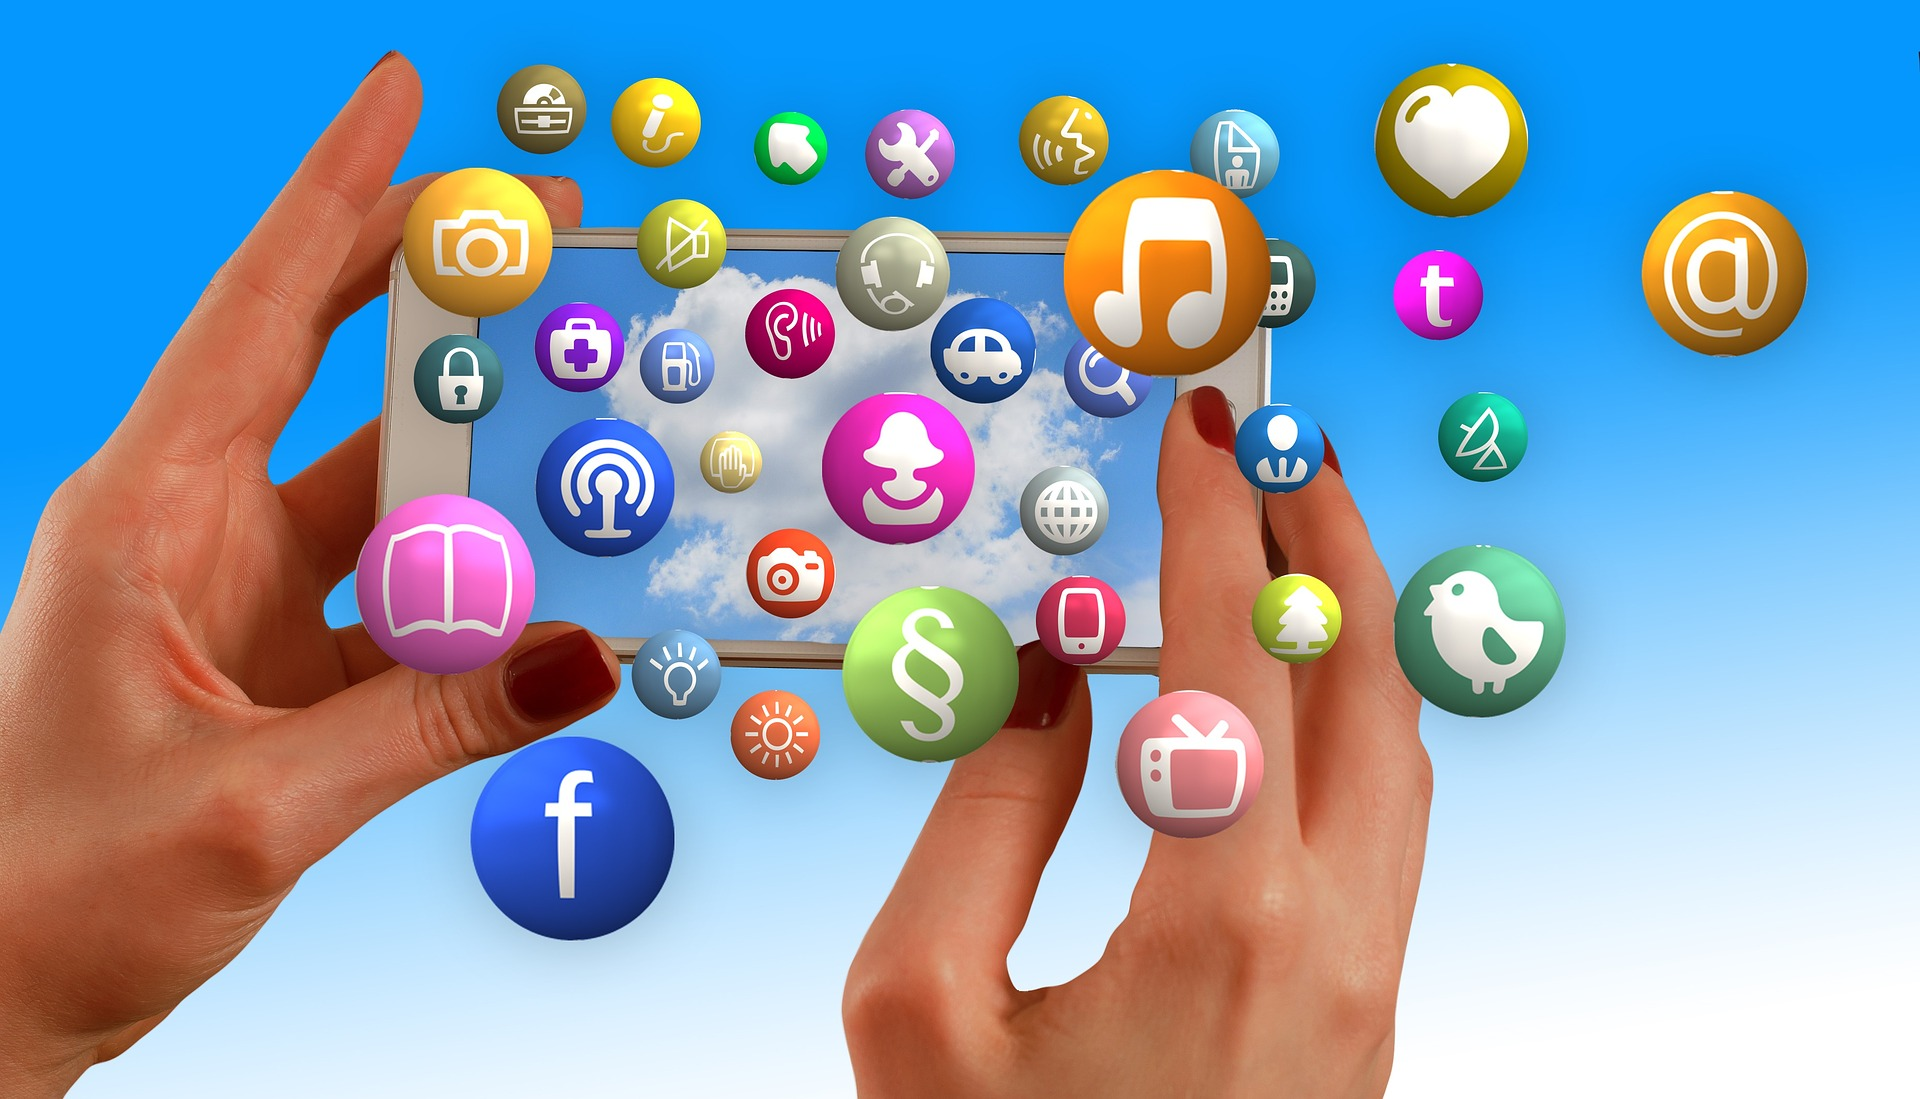 Abstract image of lady's hands holding smartphone with social media icons flying out the screen.